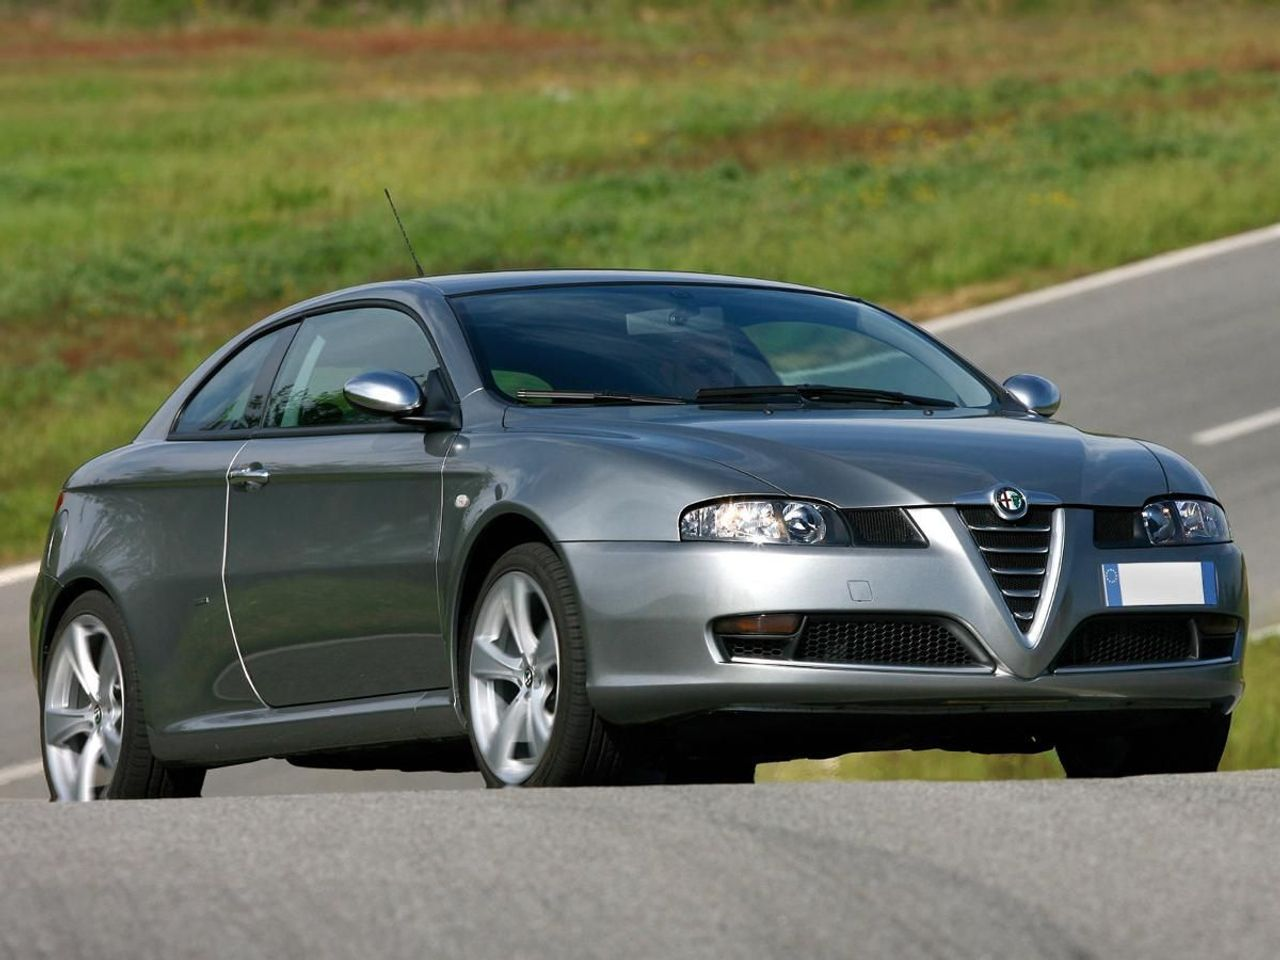 alfa romeo gt coupe 2004 2010 review auto trader uk. Black Bedroom Furniture Sets. Home Design Ideas